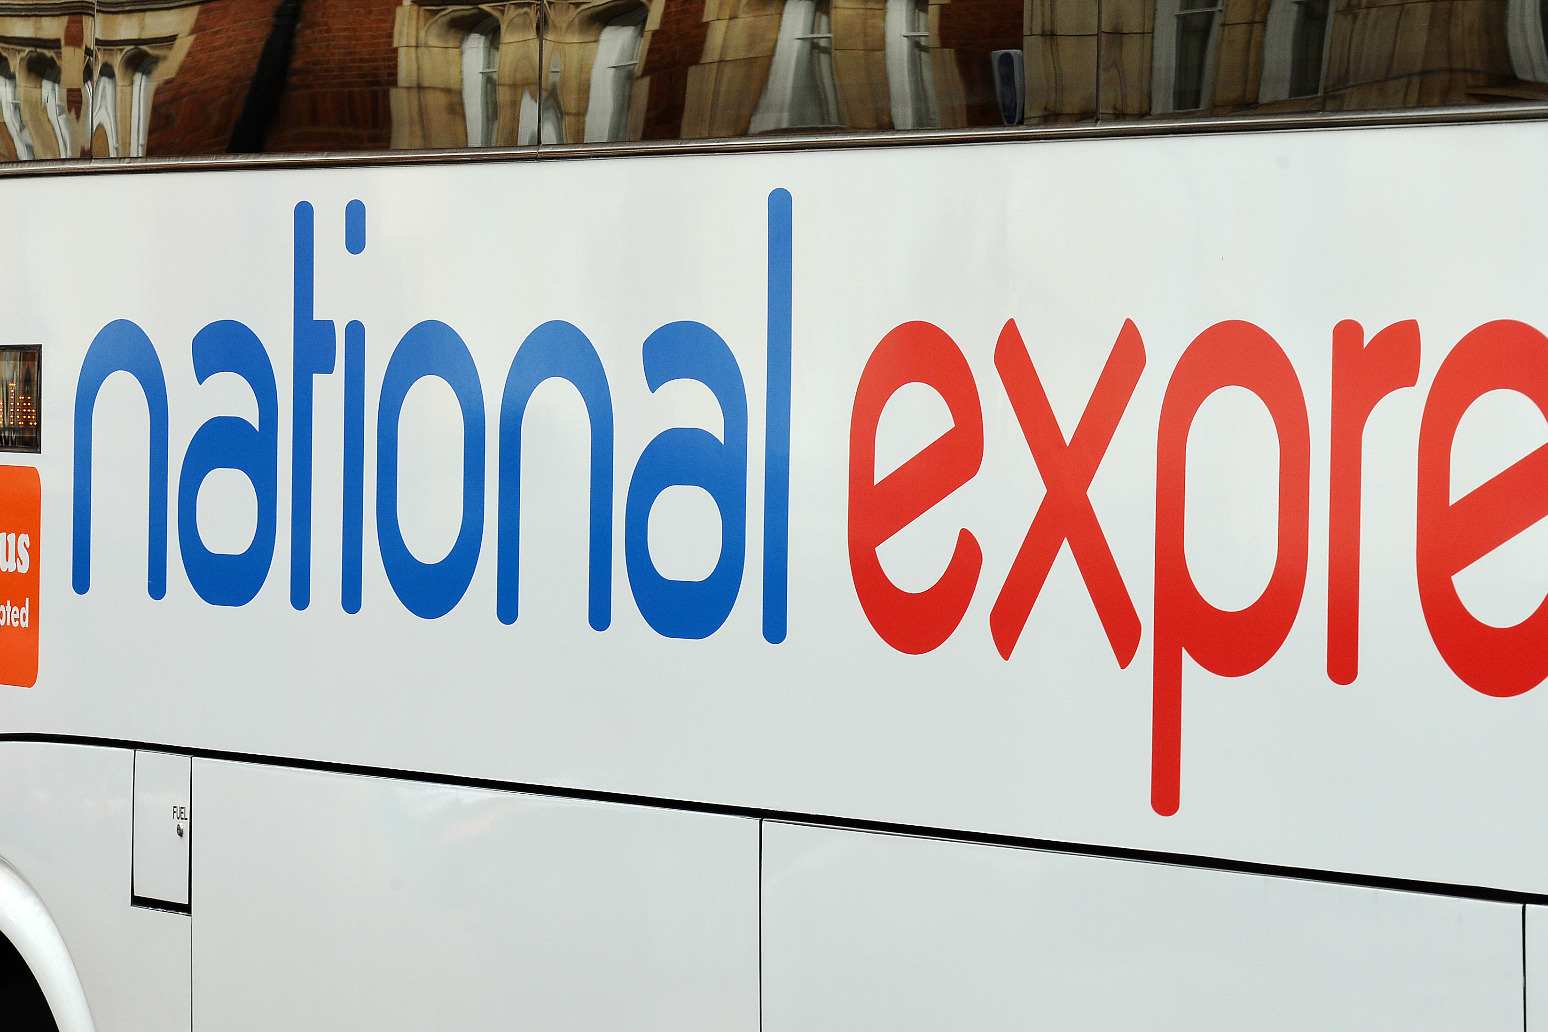 National Express avoids fuel shortages, but feels pressure on driver numbers